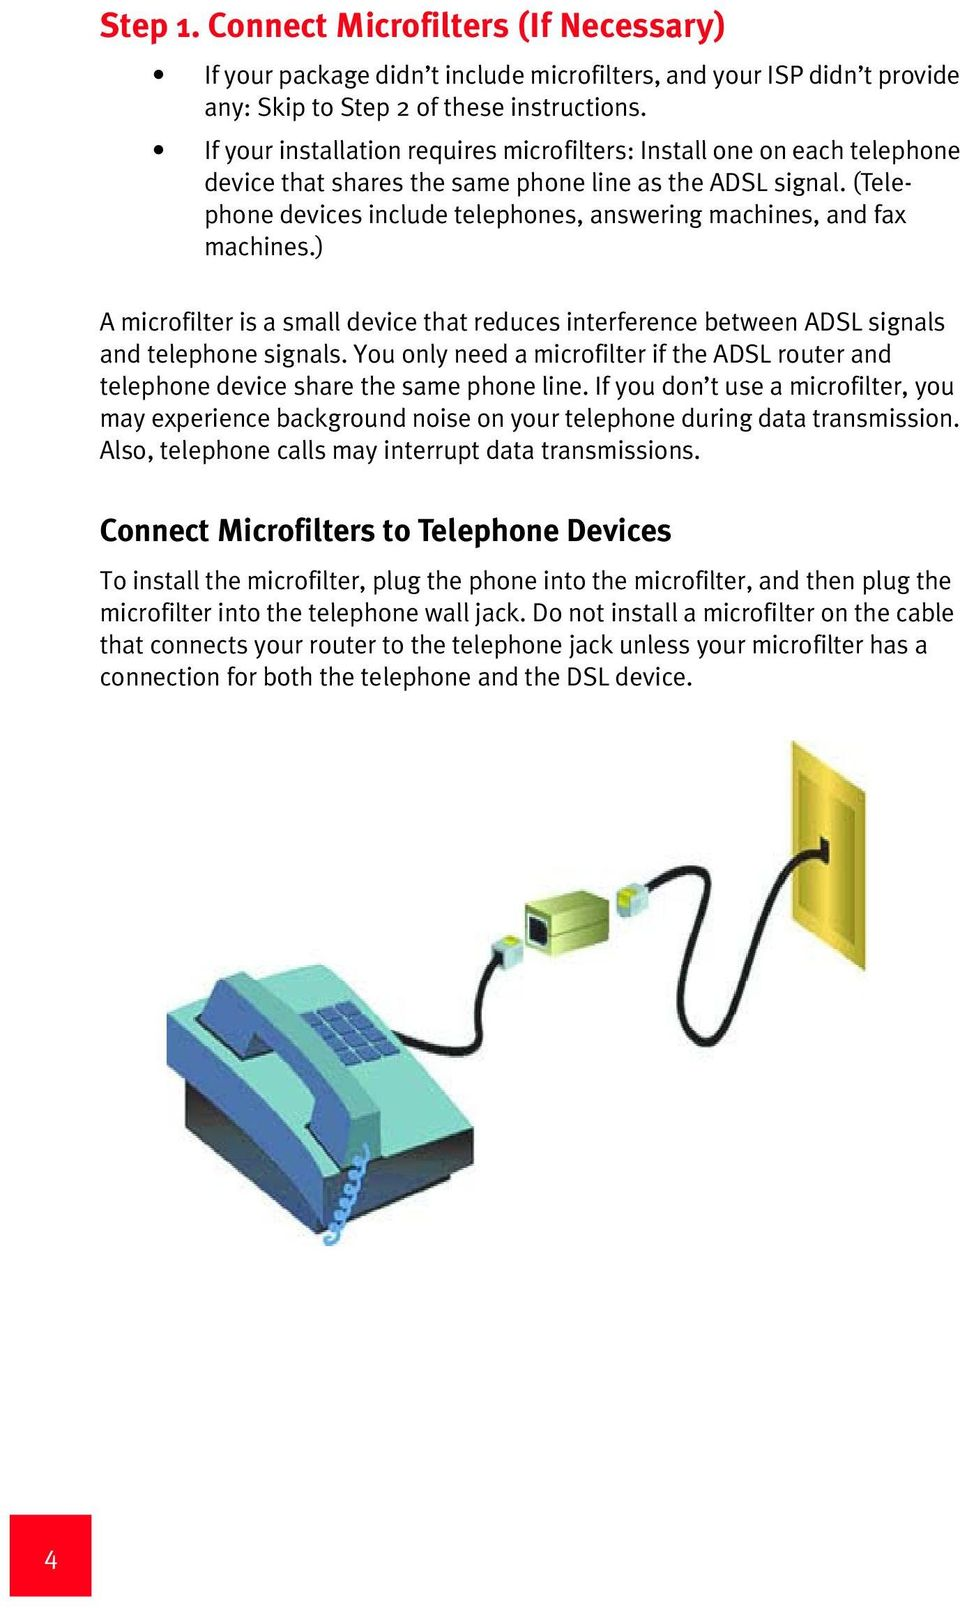 (Telephone devices include telephones, answering machines, and fax machines.) A microfilter is a small device that reduces interference between ADSL signals and telephone signals.